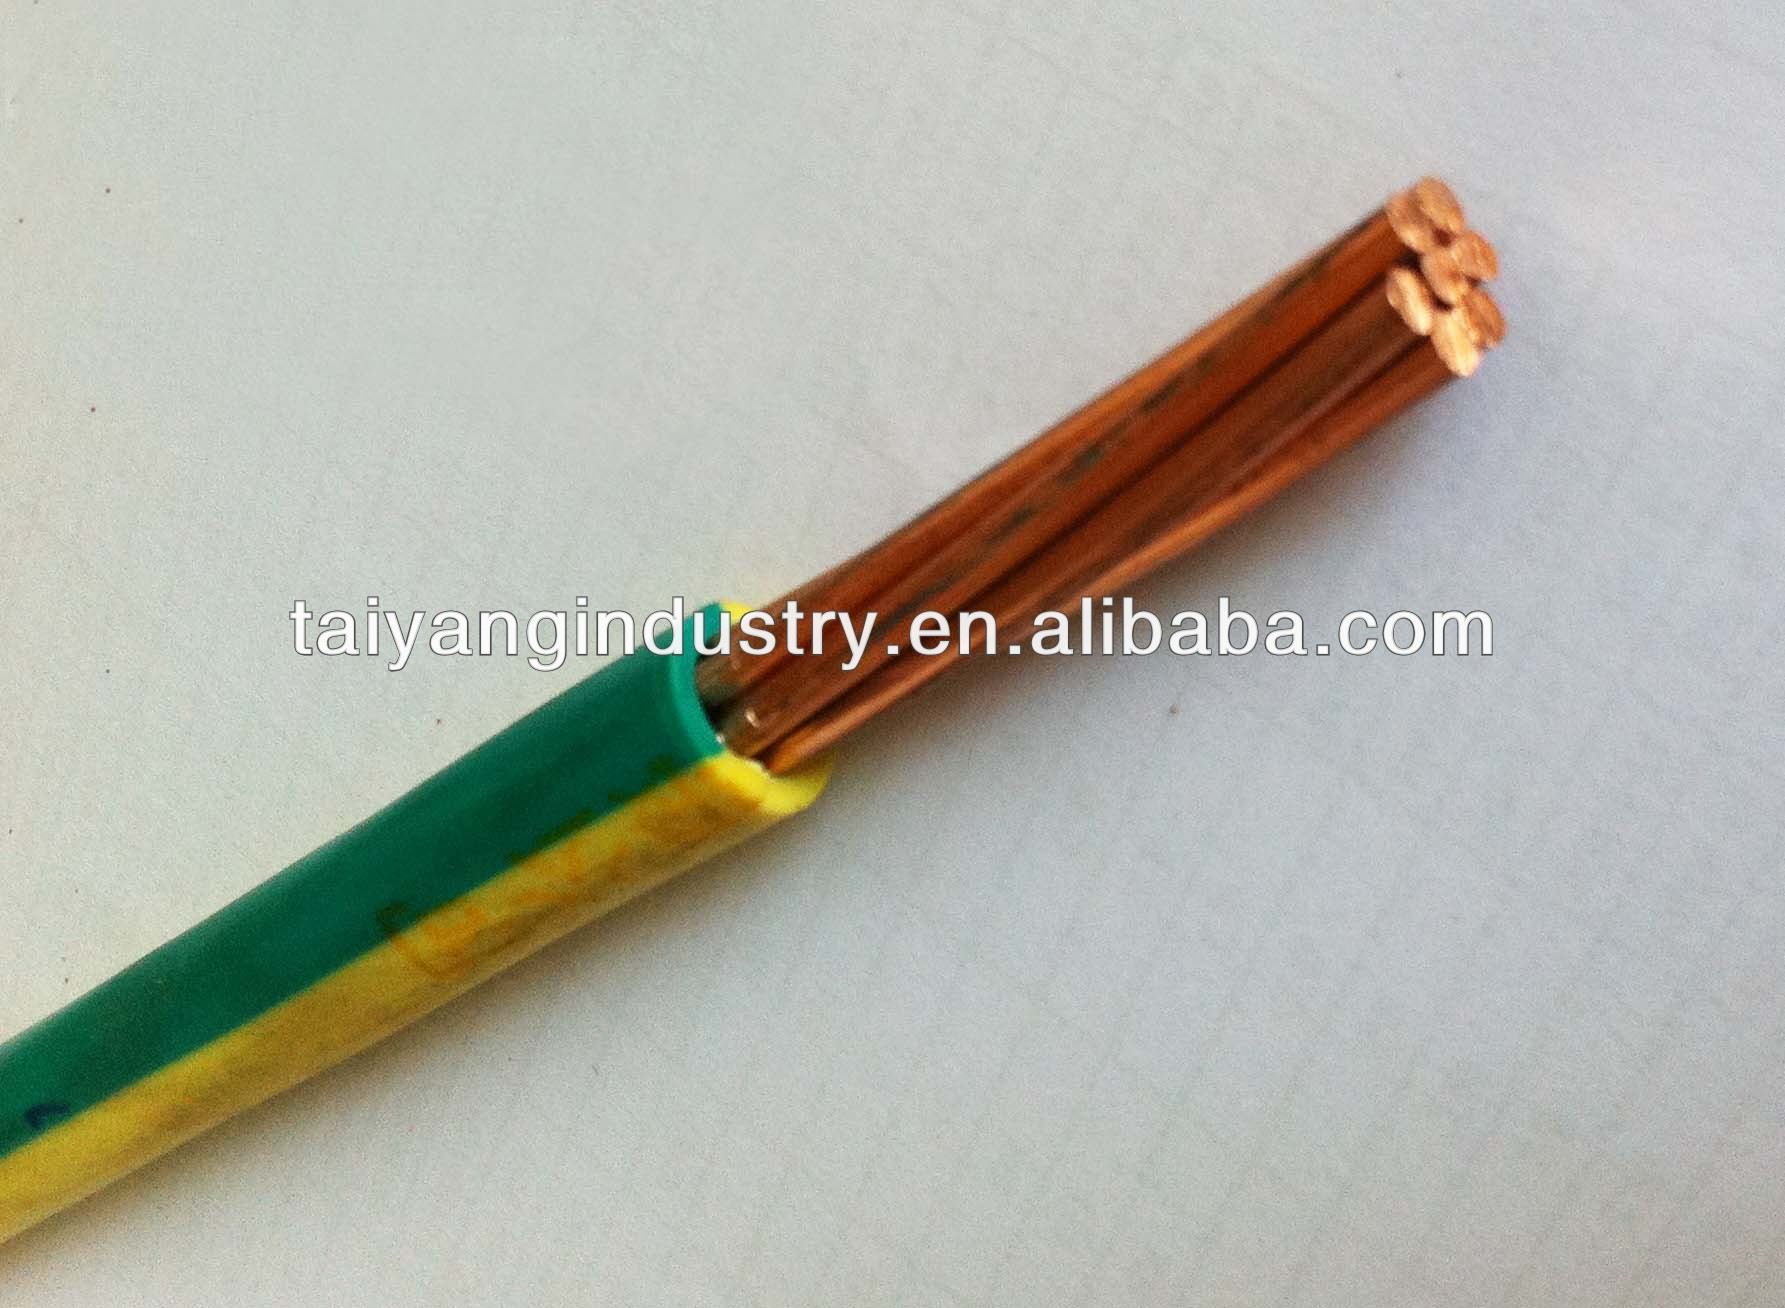 H07v-r Pvc Insulated Electric Wire And Cable 16mm--green/yellow Wire ...